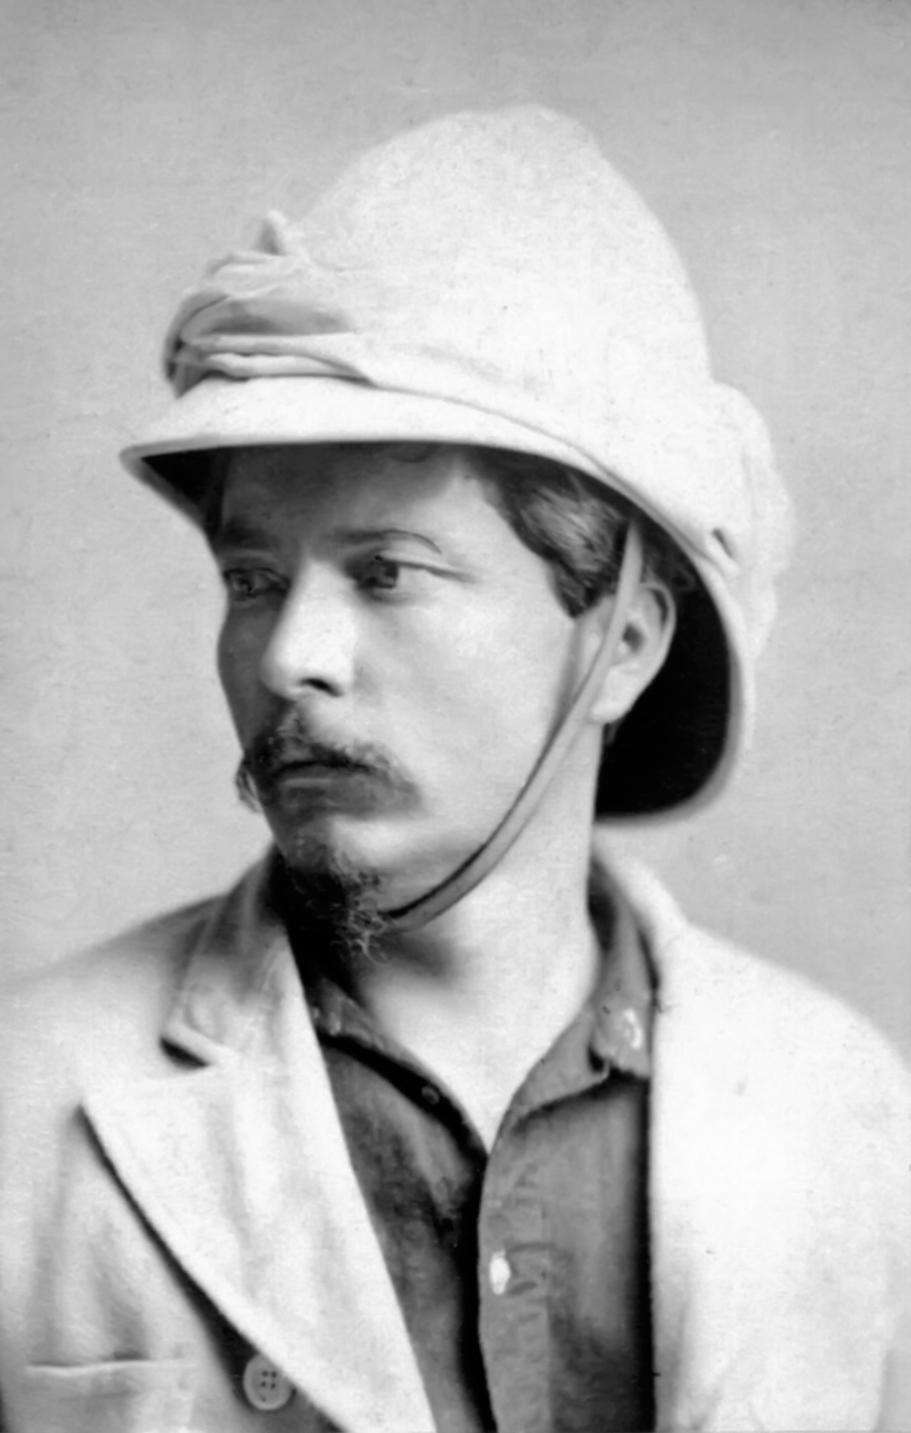 Henry Morton Stanley, whose exploration of the Congo region at Leopold's invitation led to the establishment of the Congo Free State under personal sovereignty